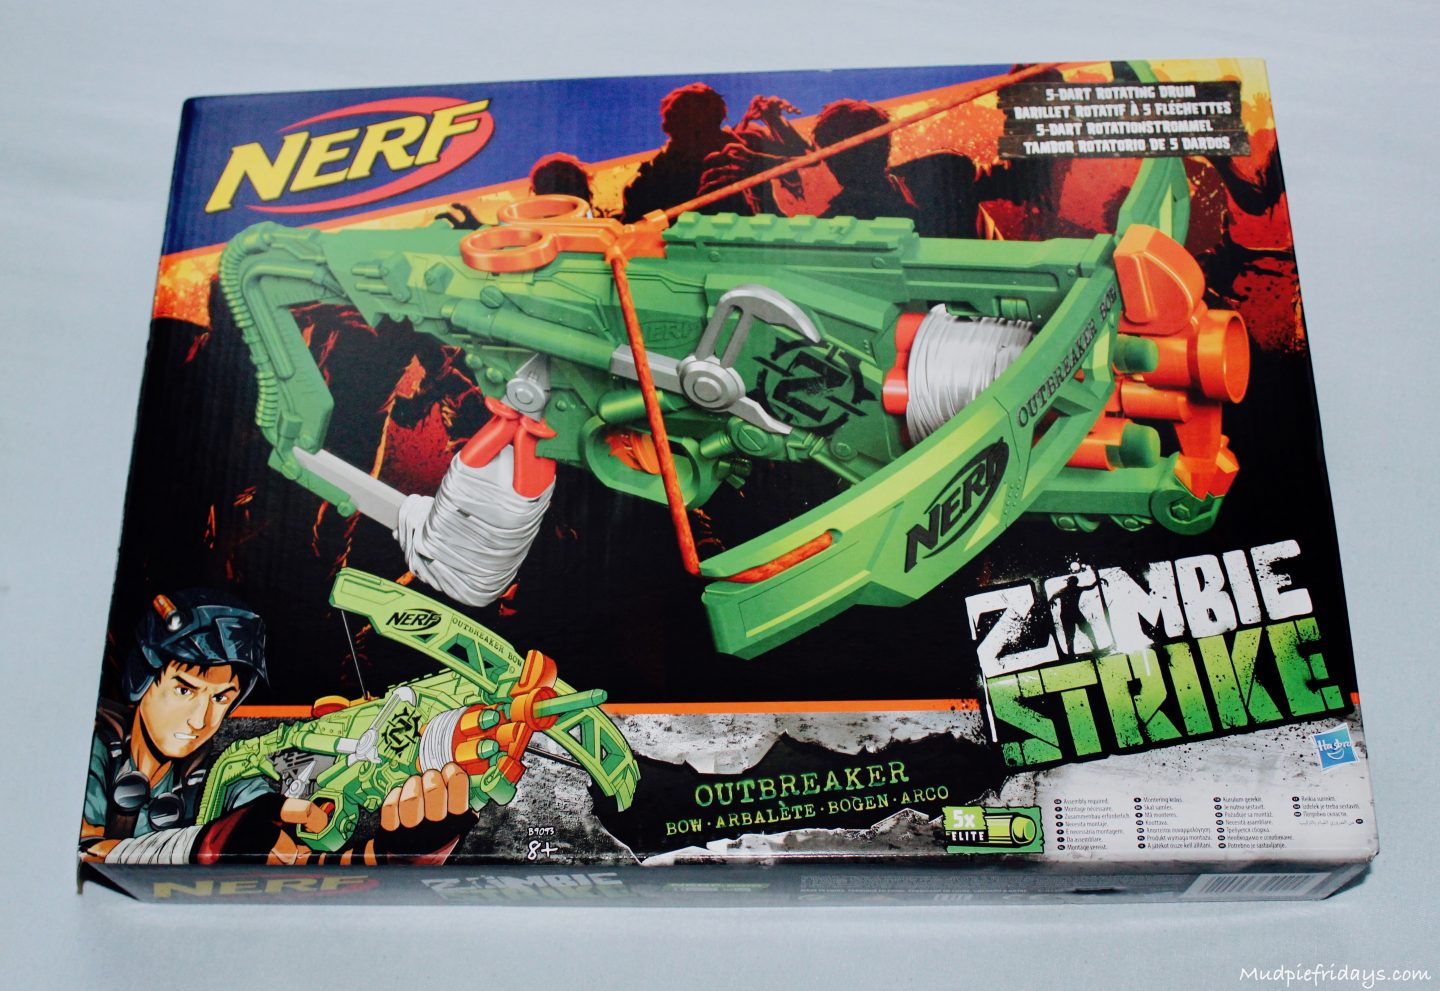 NERF Zombie Strike Outbreaker Bow Review